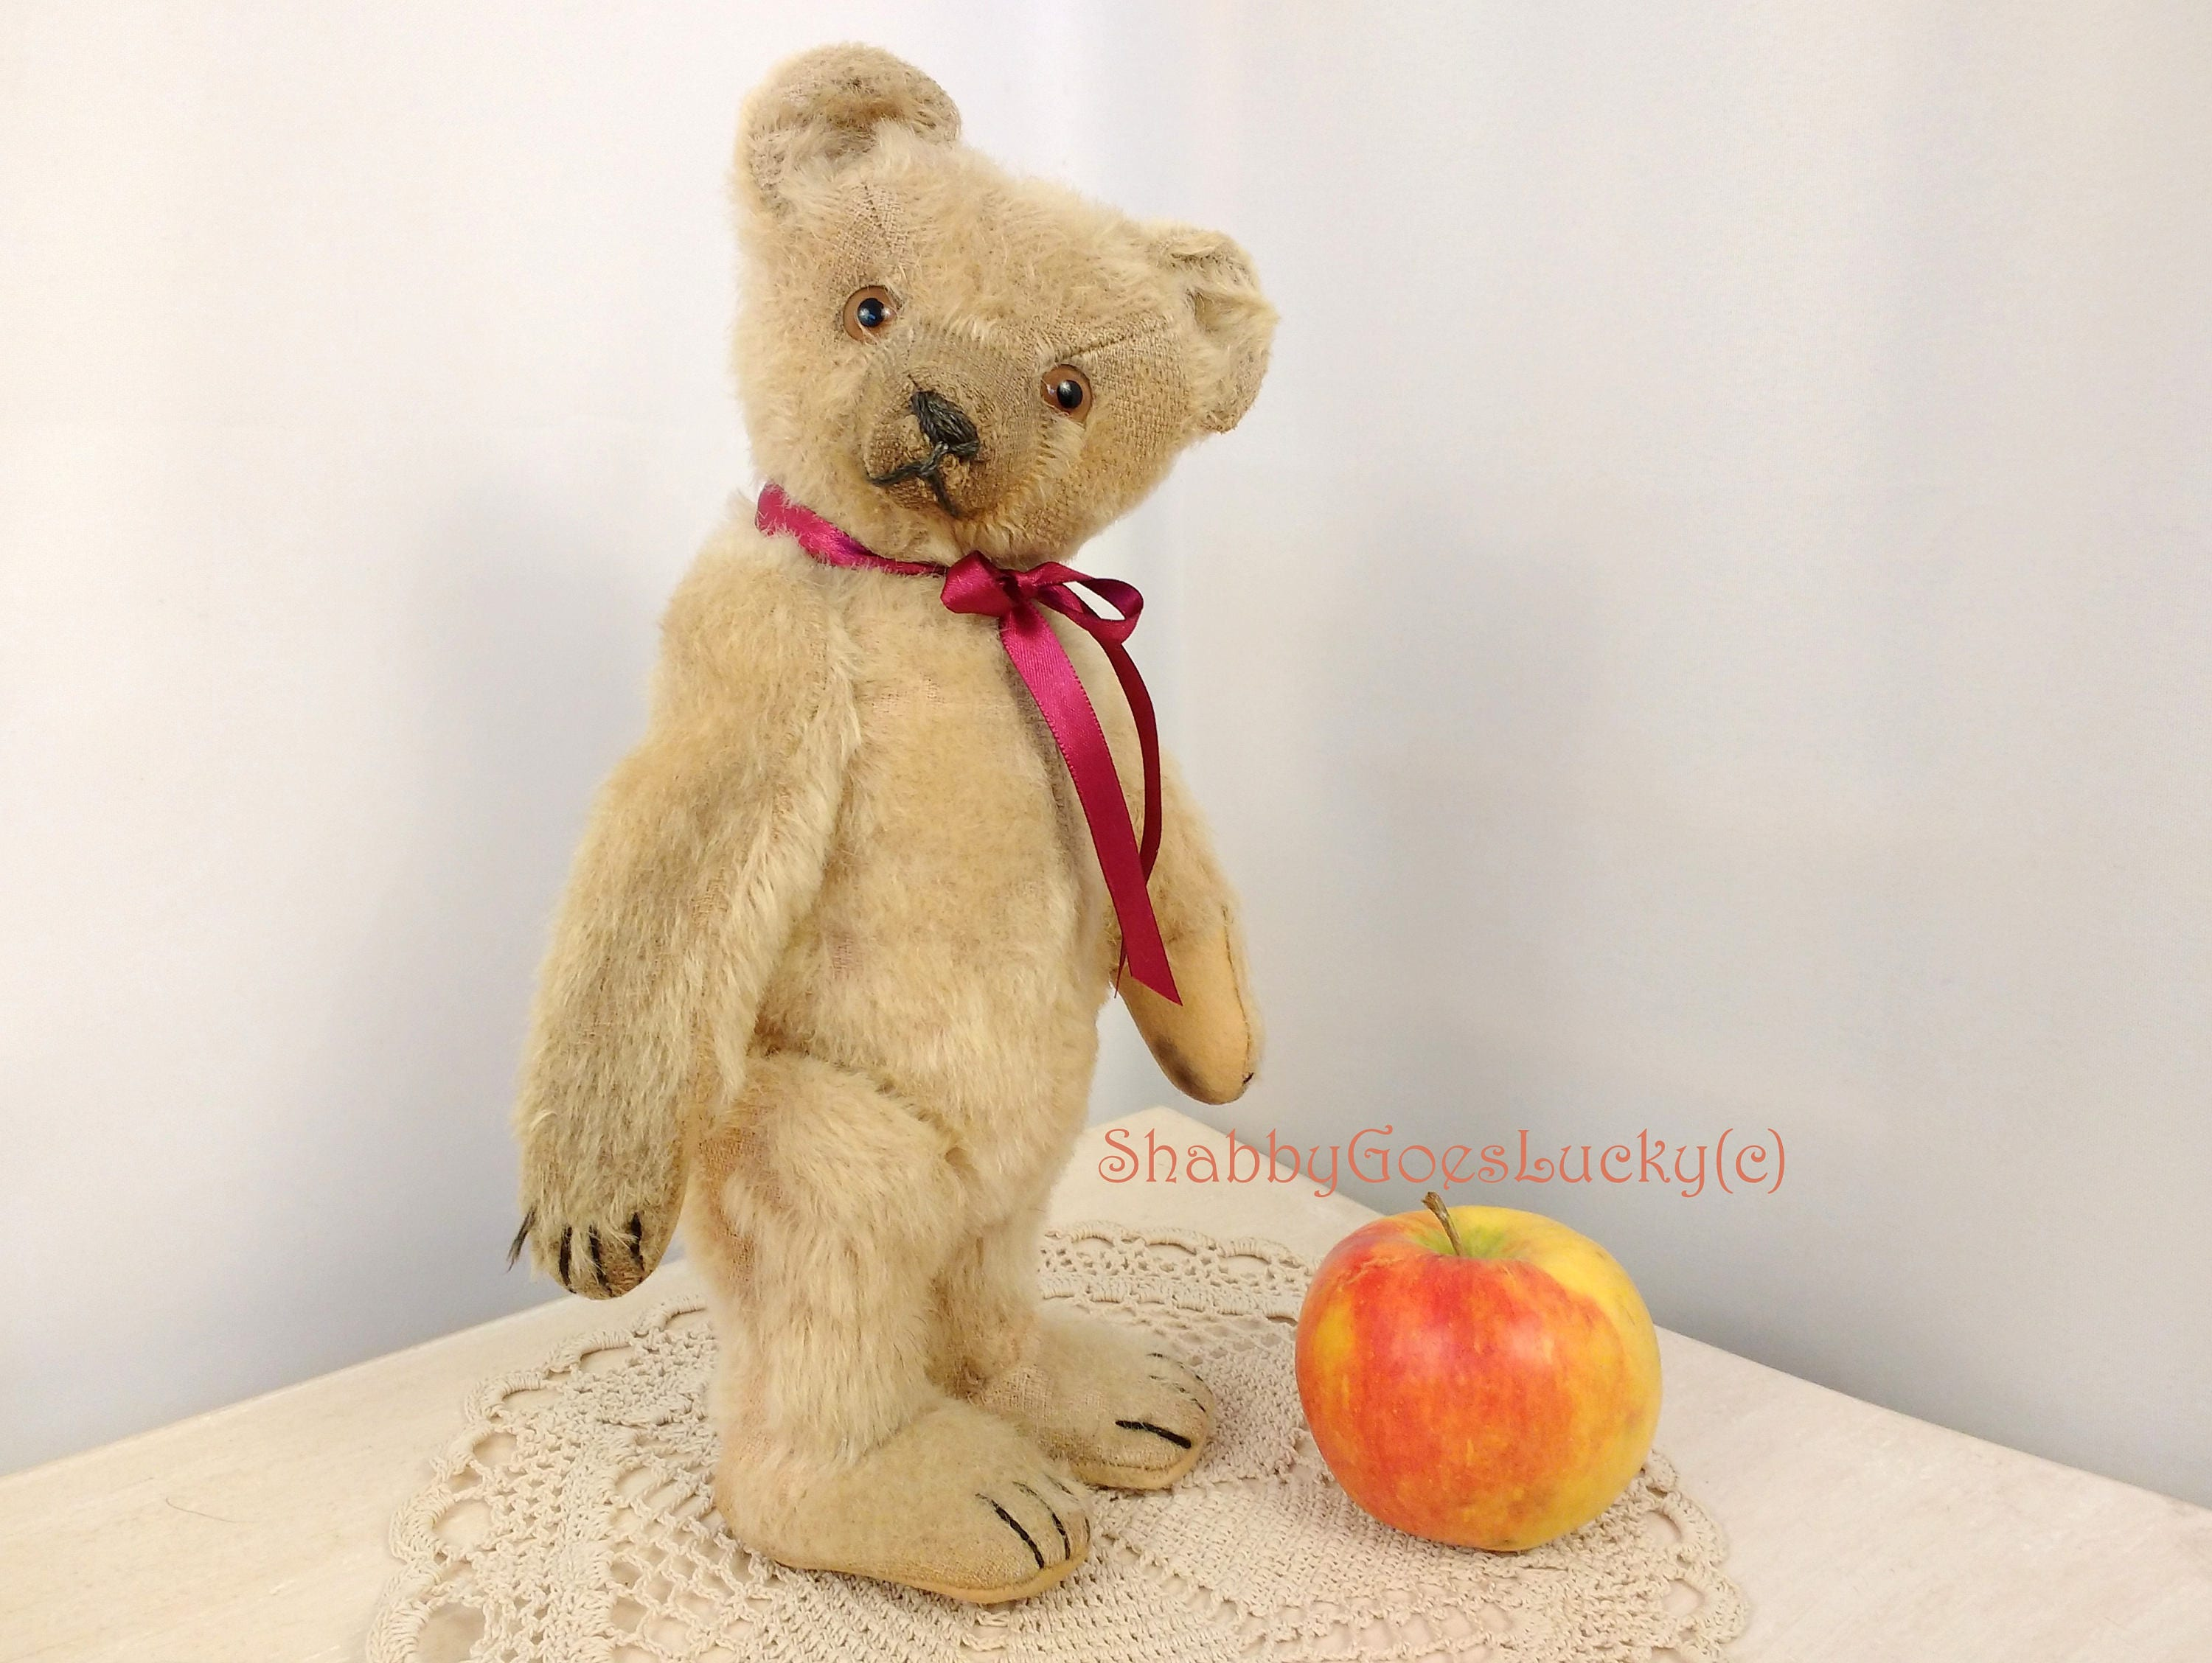 Antique German teddy bear 1920s made by Willy Weiersmüller in